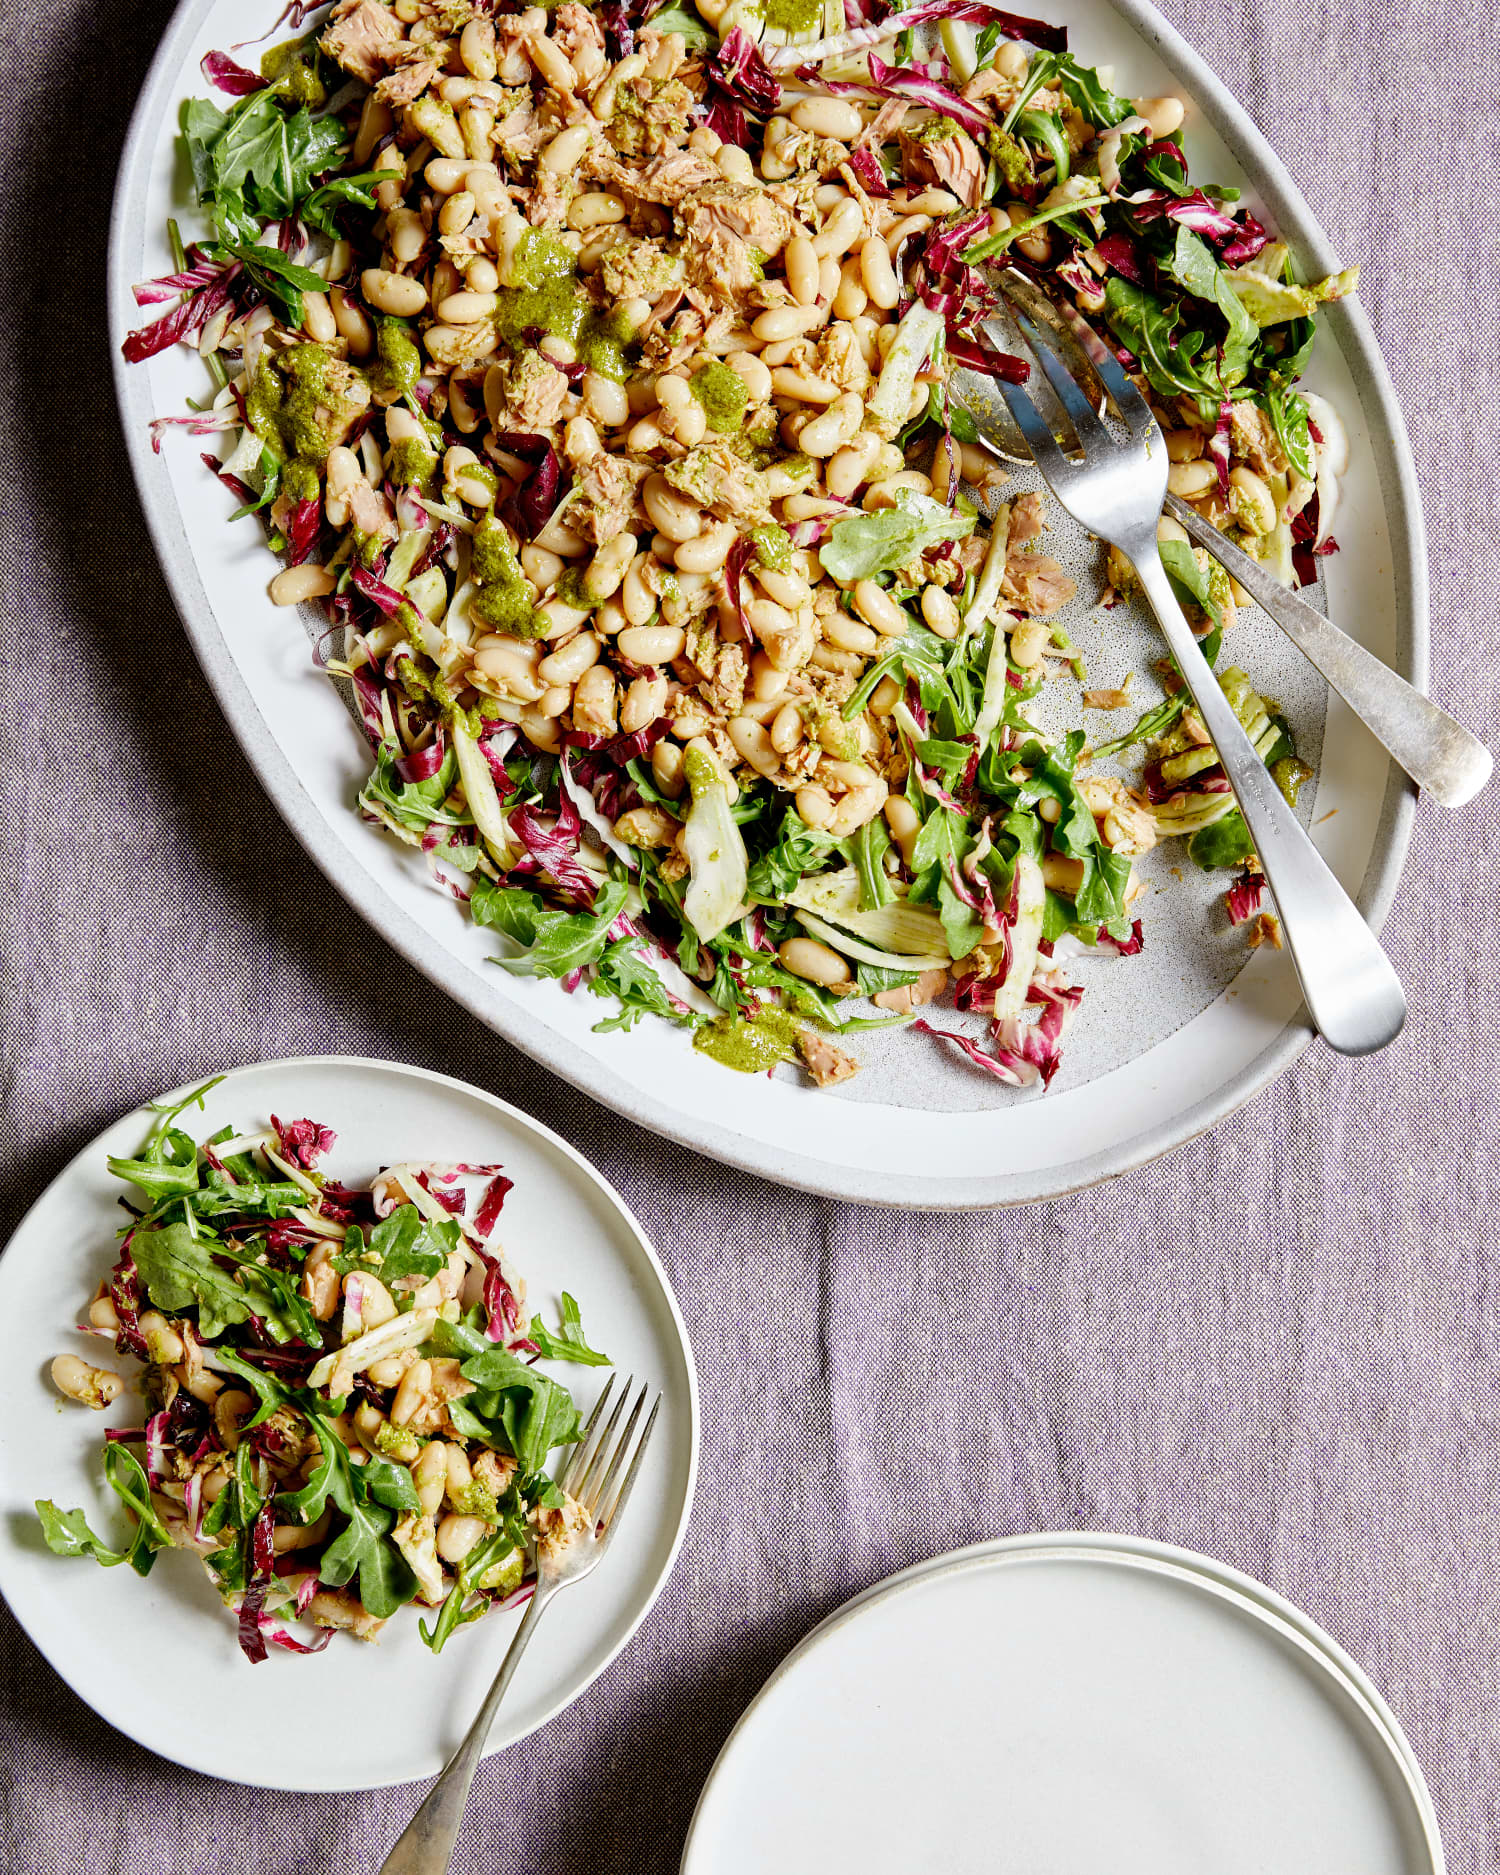 Pesto Tuna and White Bean Salad Is the No-Cook Summer Dinner You've Been Looking For